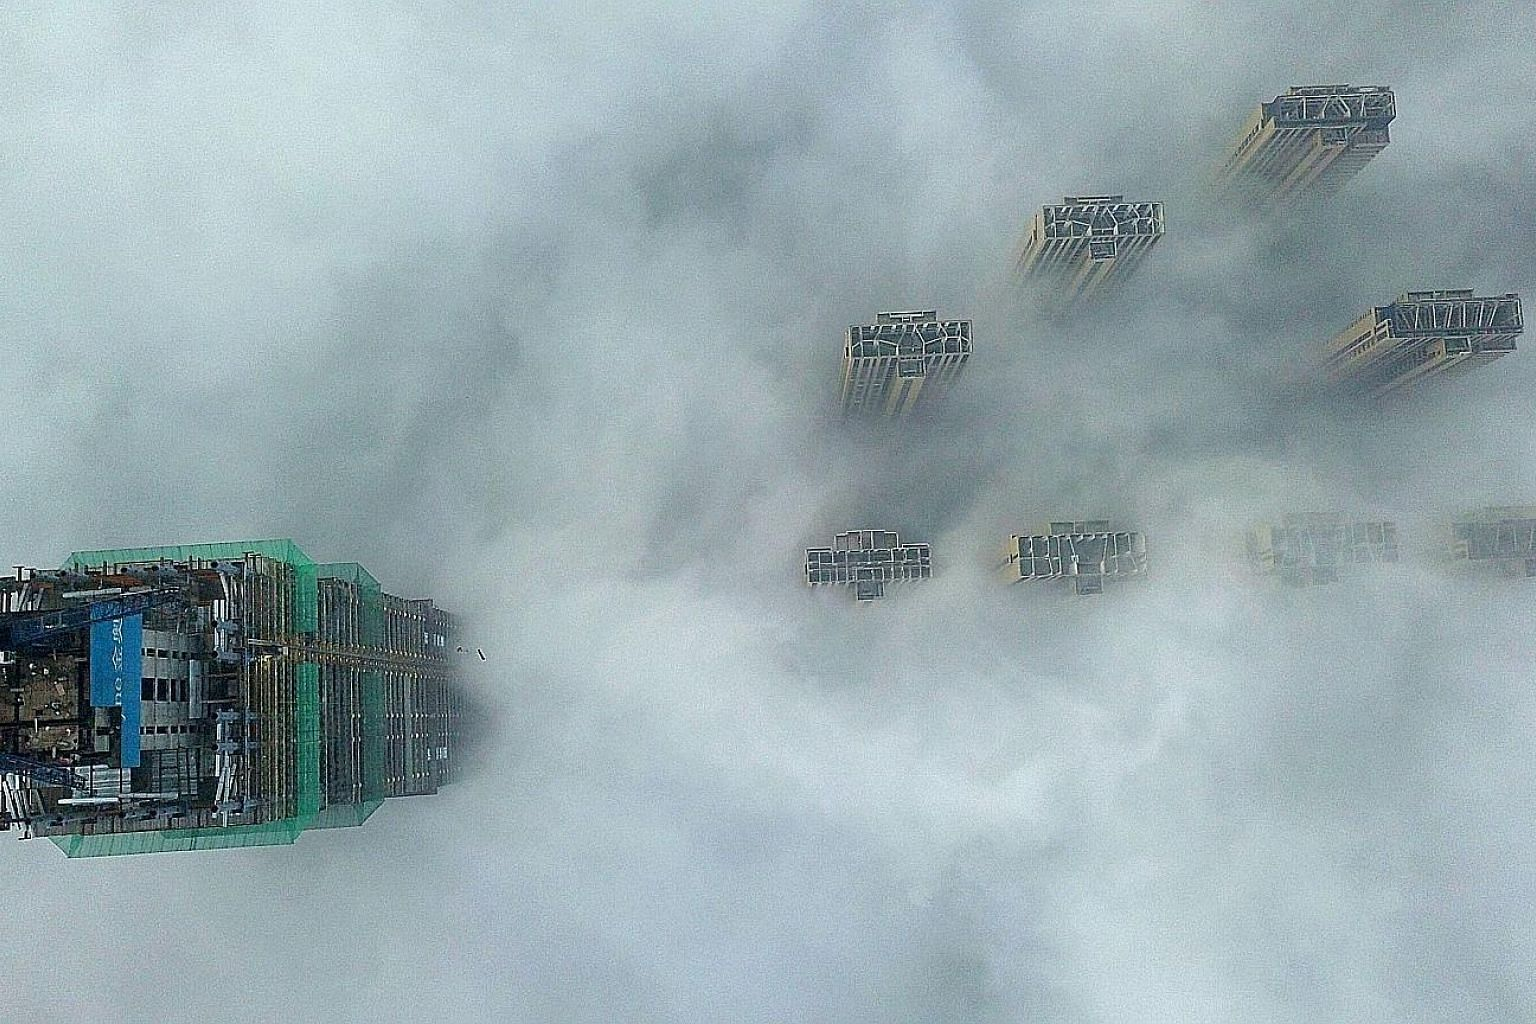 This aerial view shows the tops of high-rise buildings poking out from heavy fog in Yangzhou, in China's eastern Jiangsu province. The authorities in the city issued a red alert - the highest level - for heavy fog yesterday, with visibility reduced t